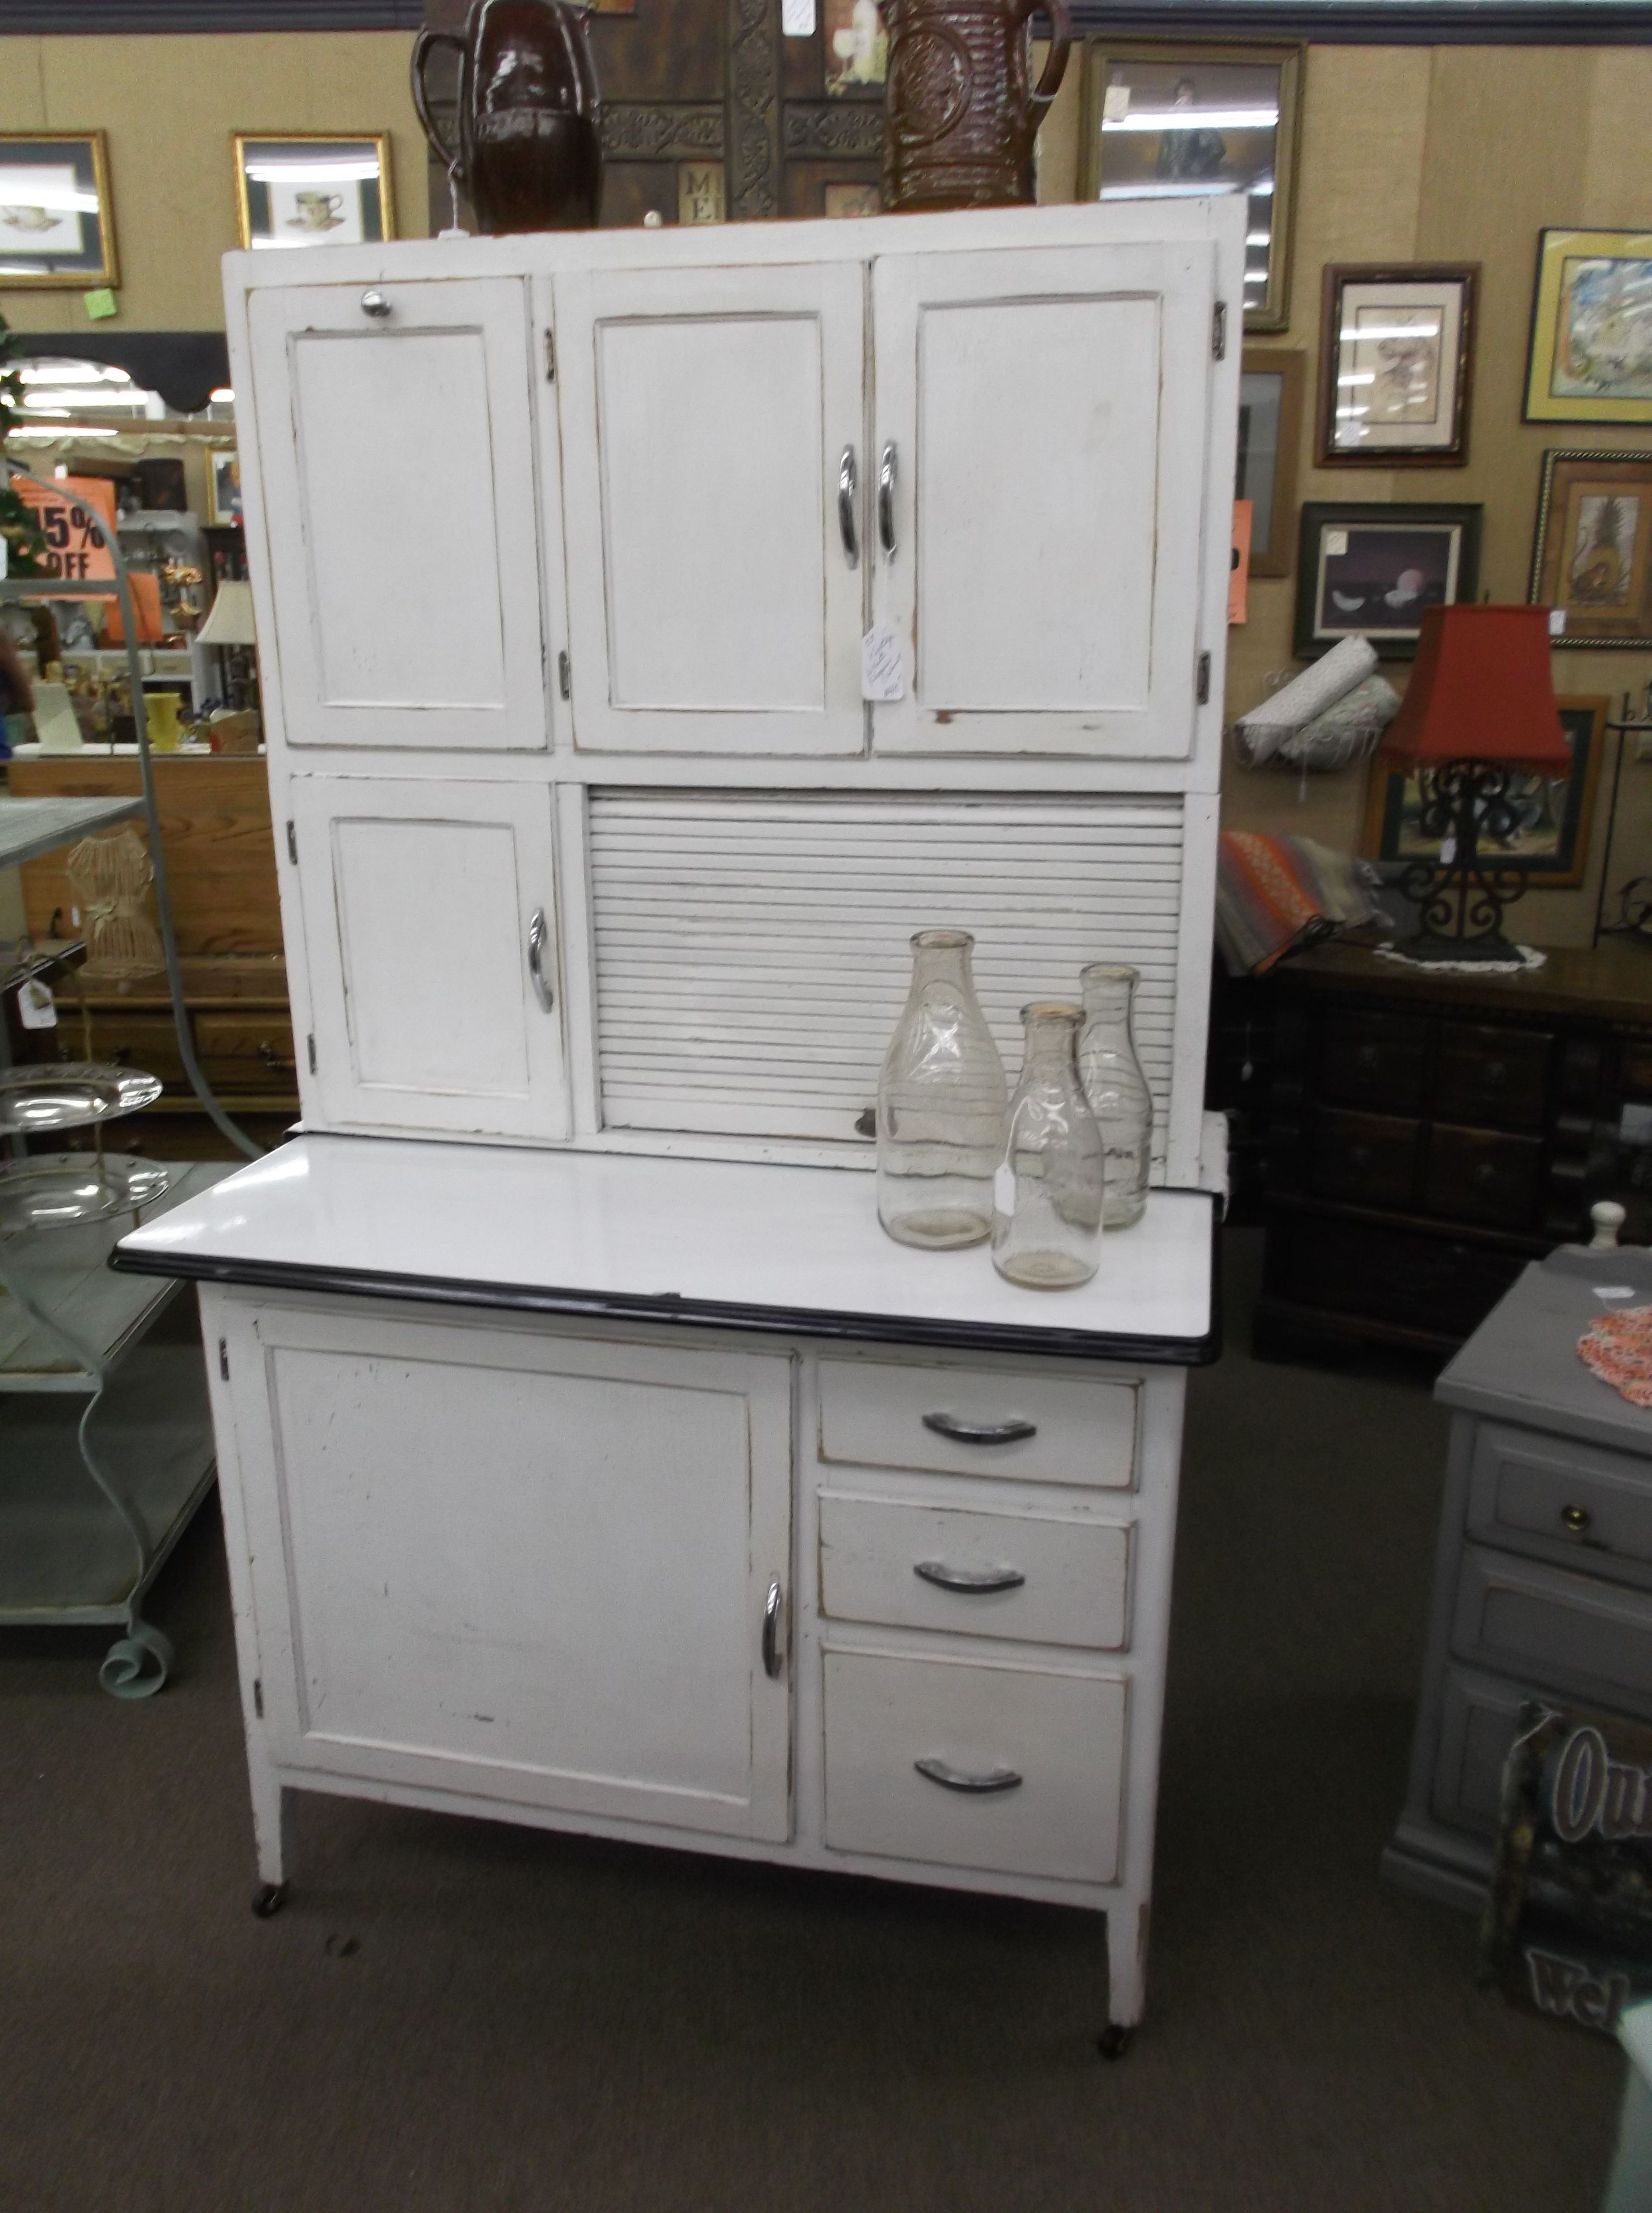 Antique Kitchen Cabinets With Flour Sifter